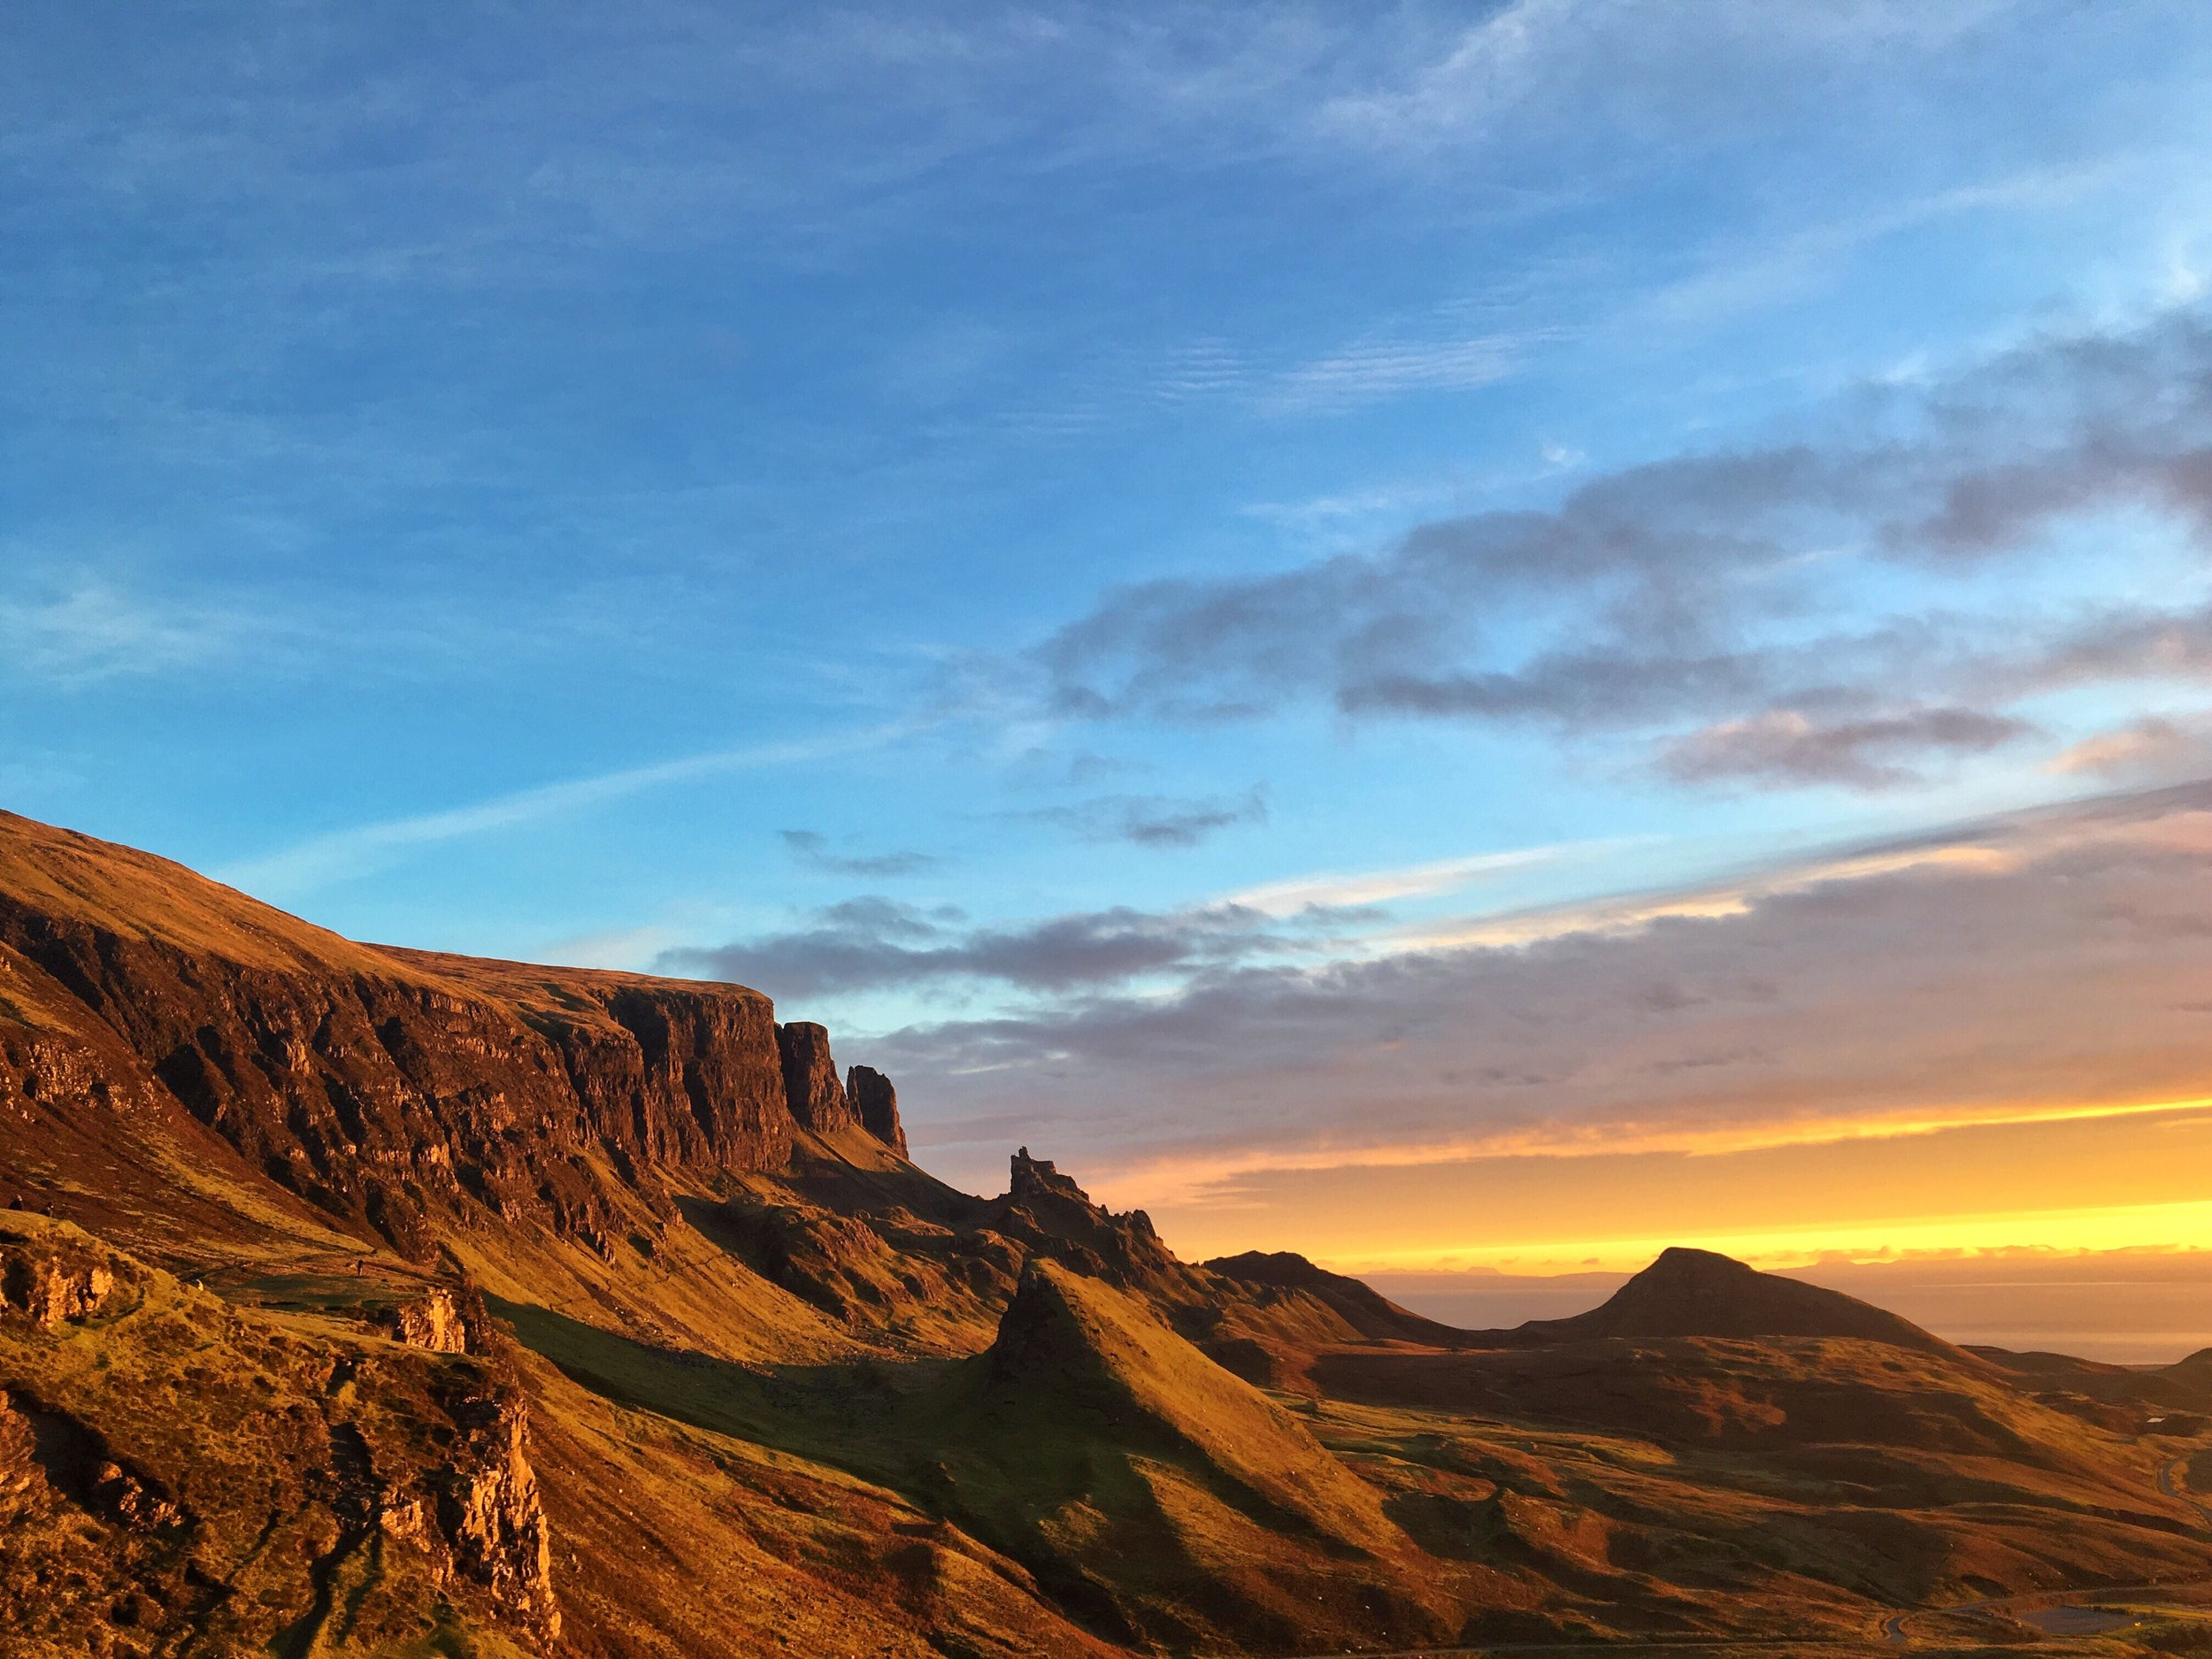 Sunrise at The Quiraing